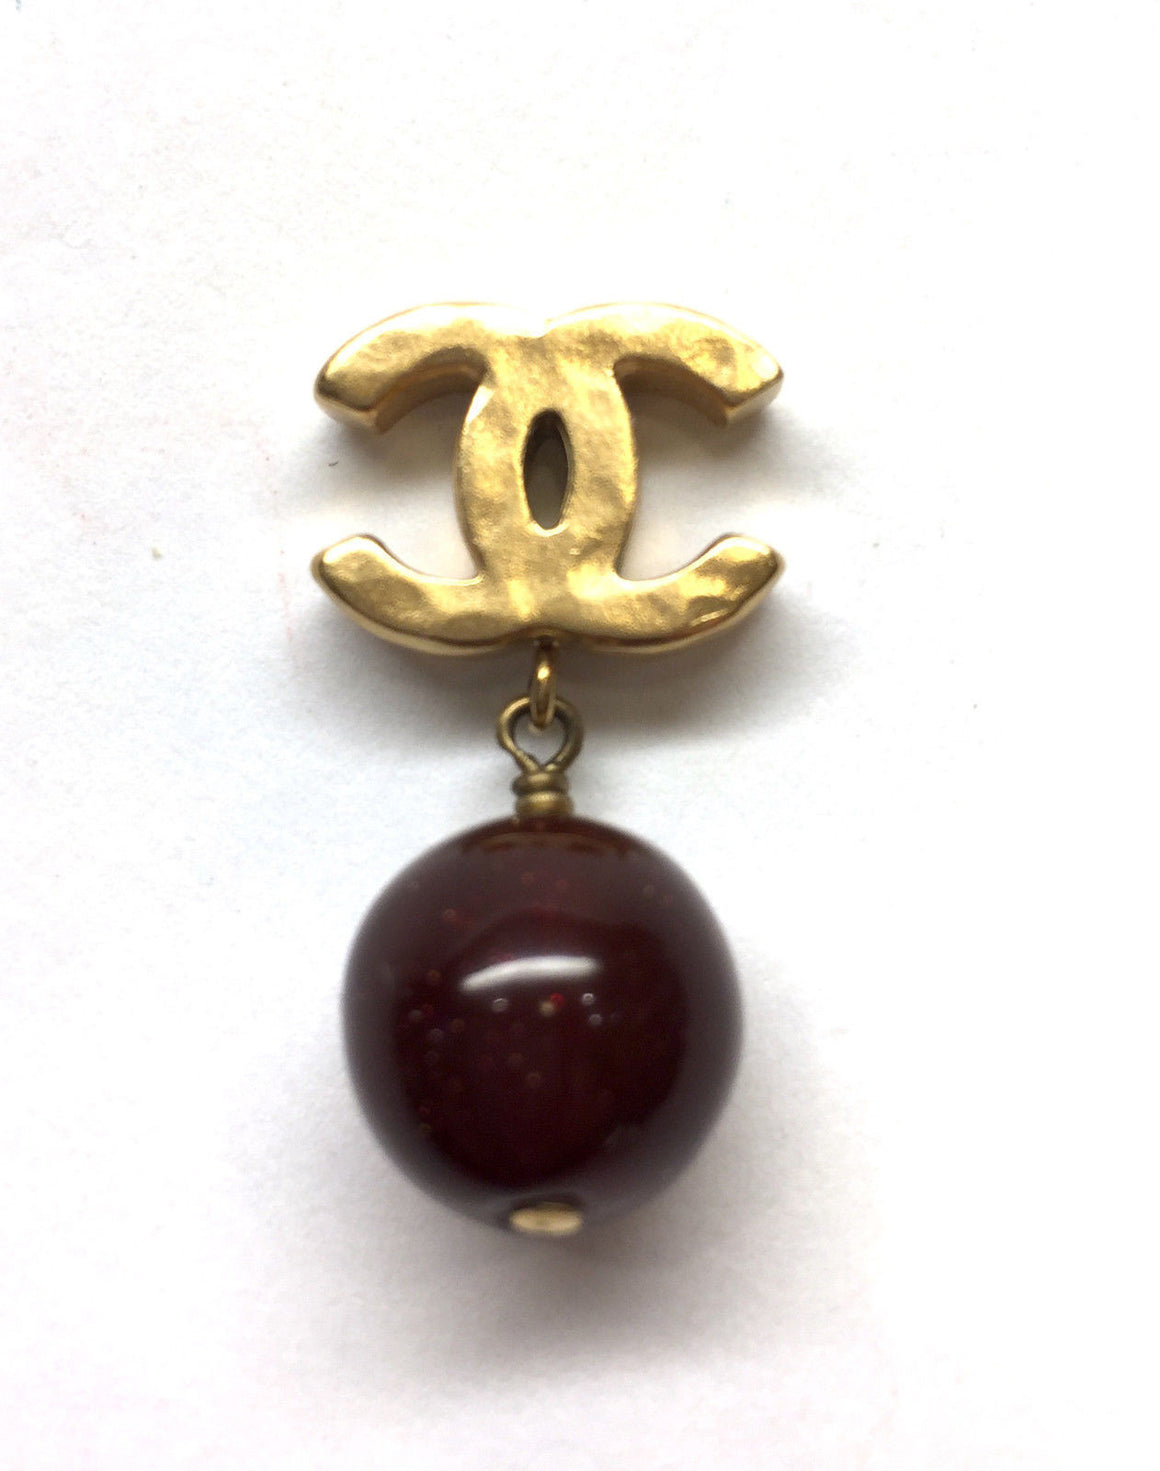 bisbiz.com CHANEL 2011 Autumn Collection  Hammered Gilt Metal Logo Post Earrings with Red Shimmery Bead Drop - Bis Luxury Resale